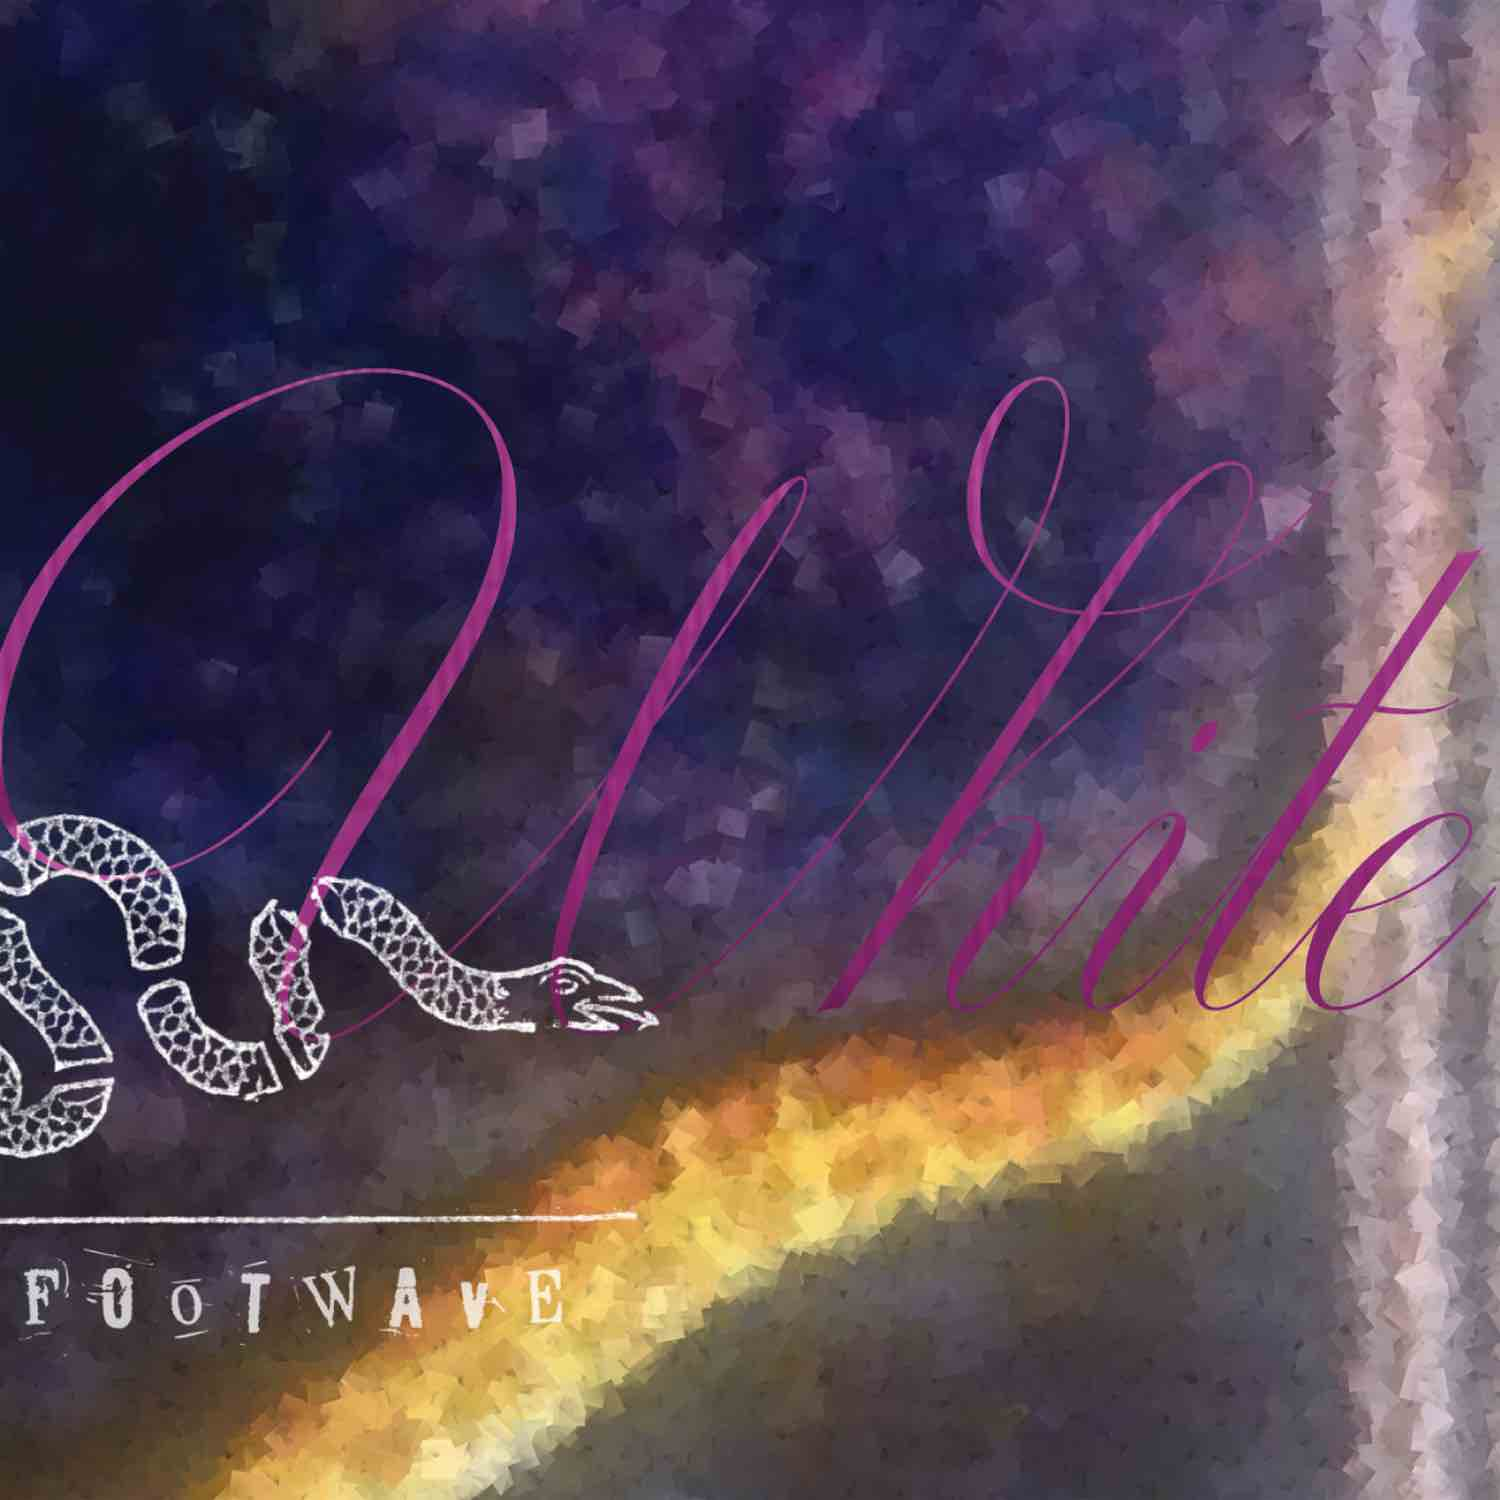 Review of Bath White EP by 50FootWave on HHBTM Records